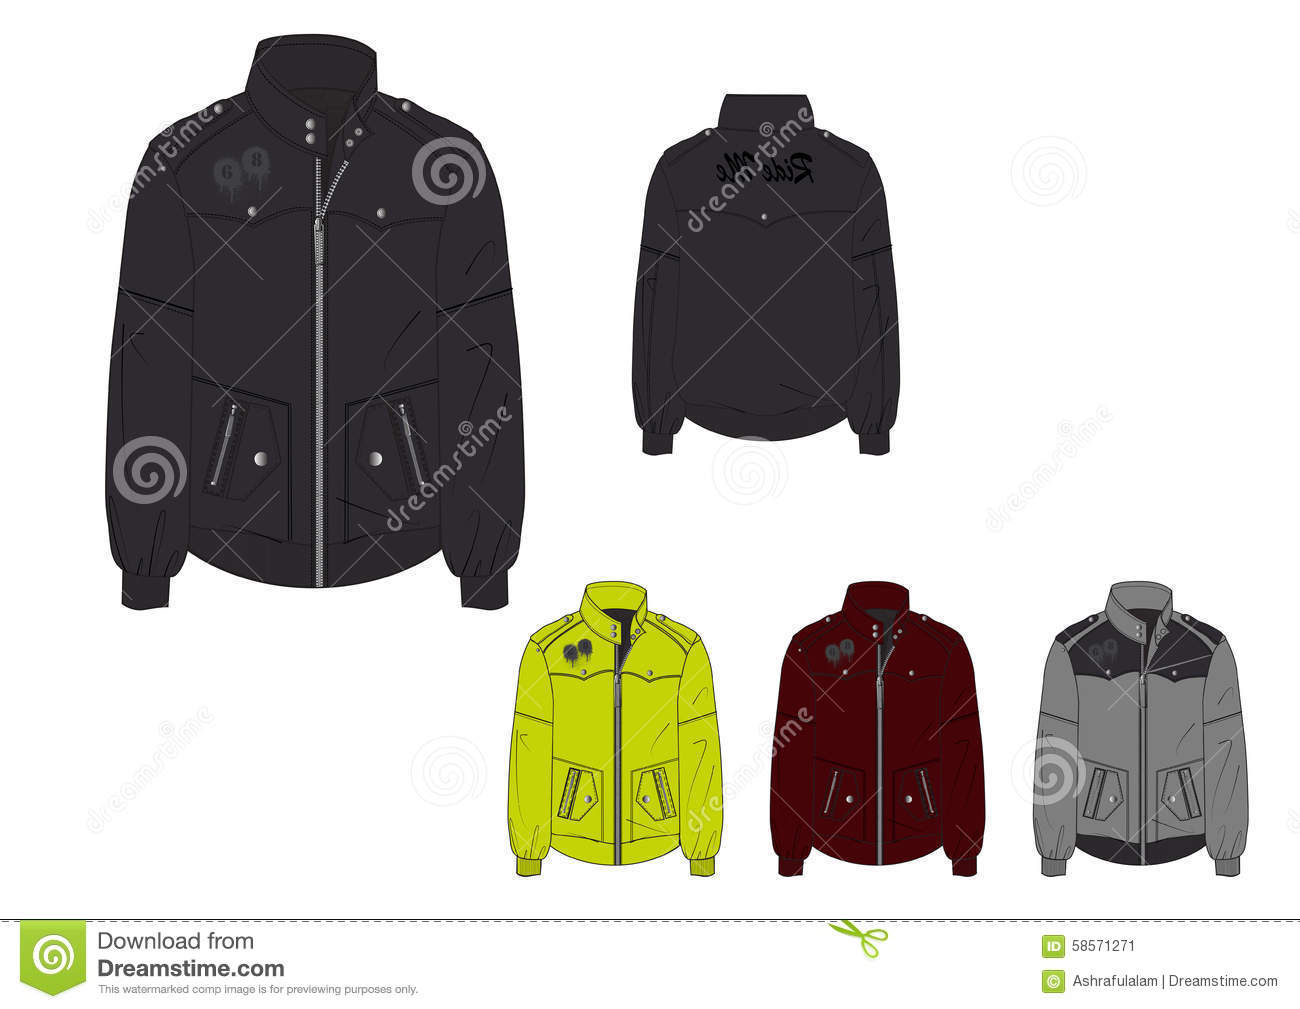 3a771863c7 Male Hoodless Windbreaker With Waterproof Jacket Design Template